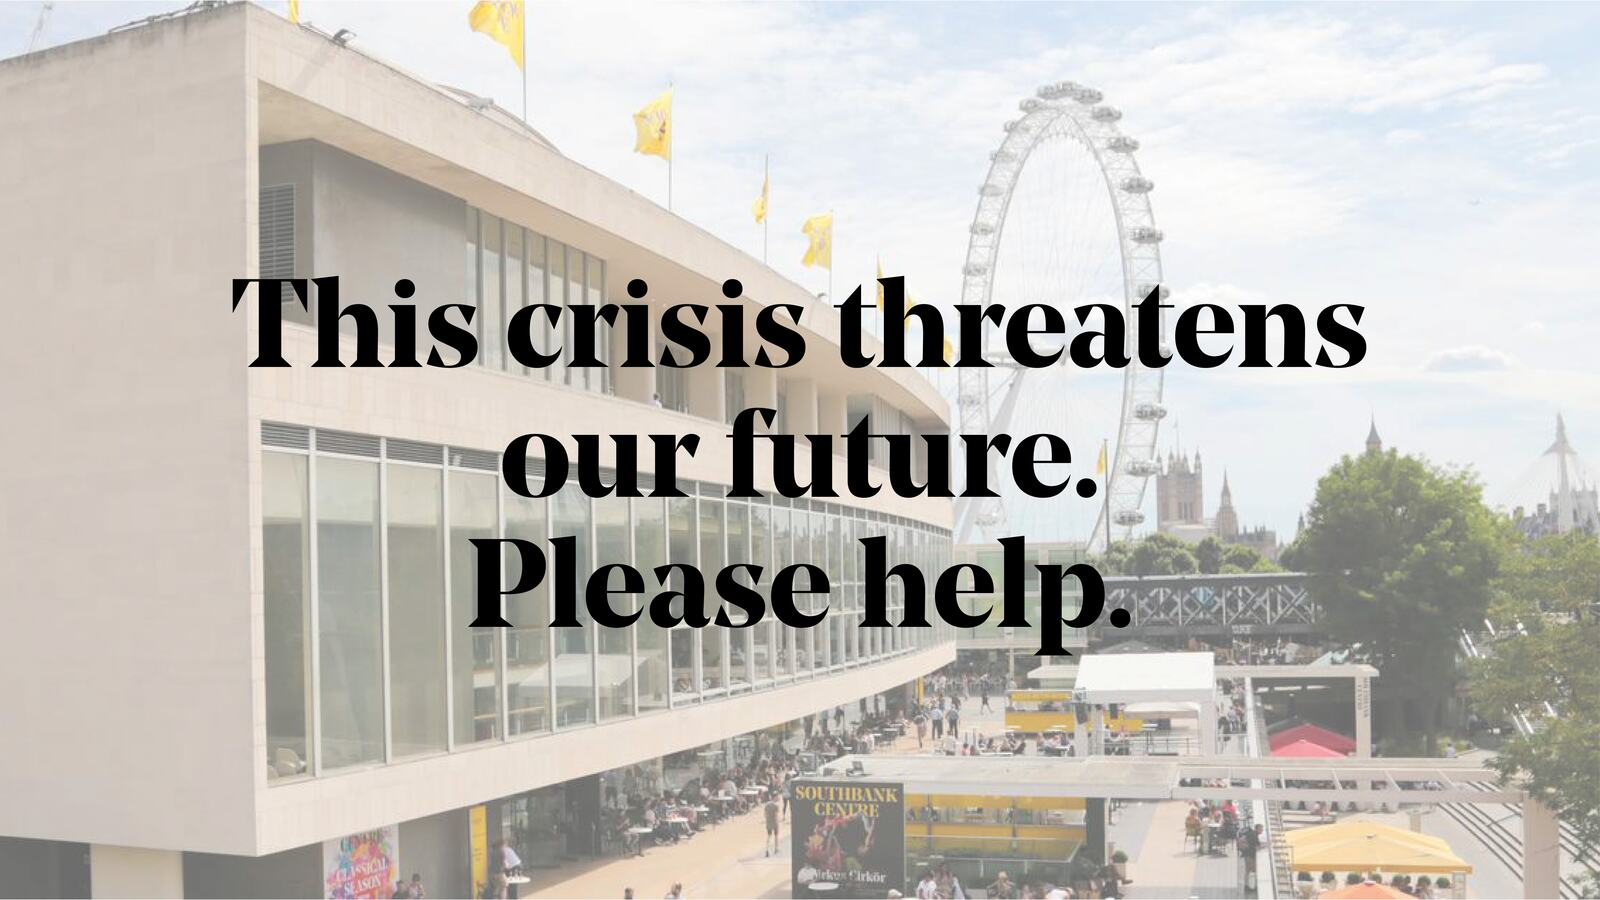 This crisis threatens our future. Please help.